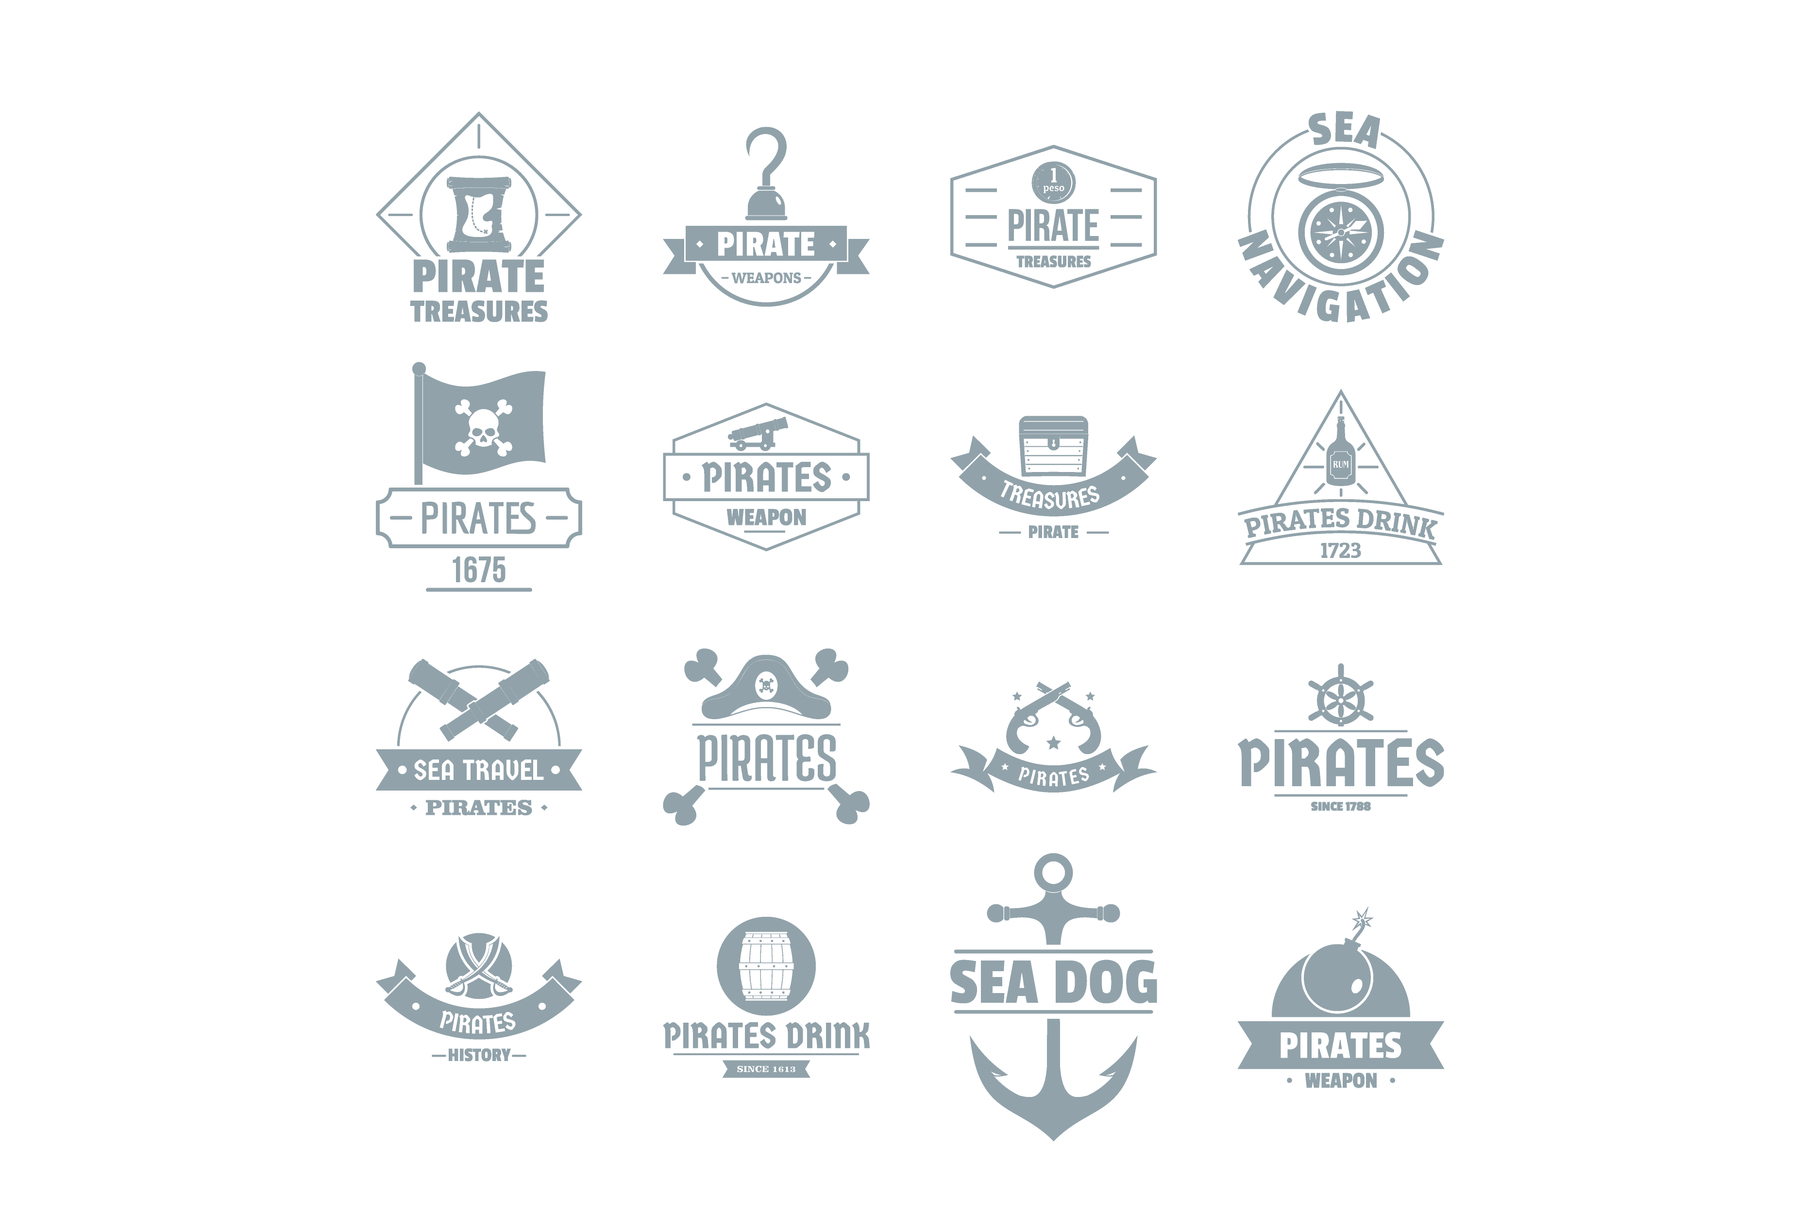 Pirate logo icons set, simple style example image 1